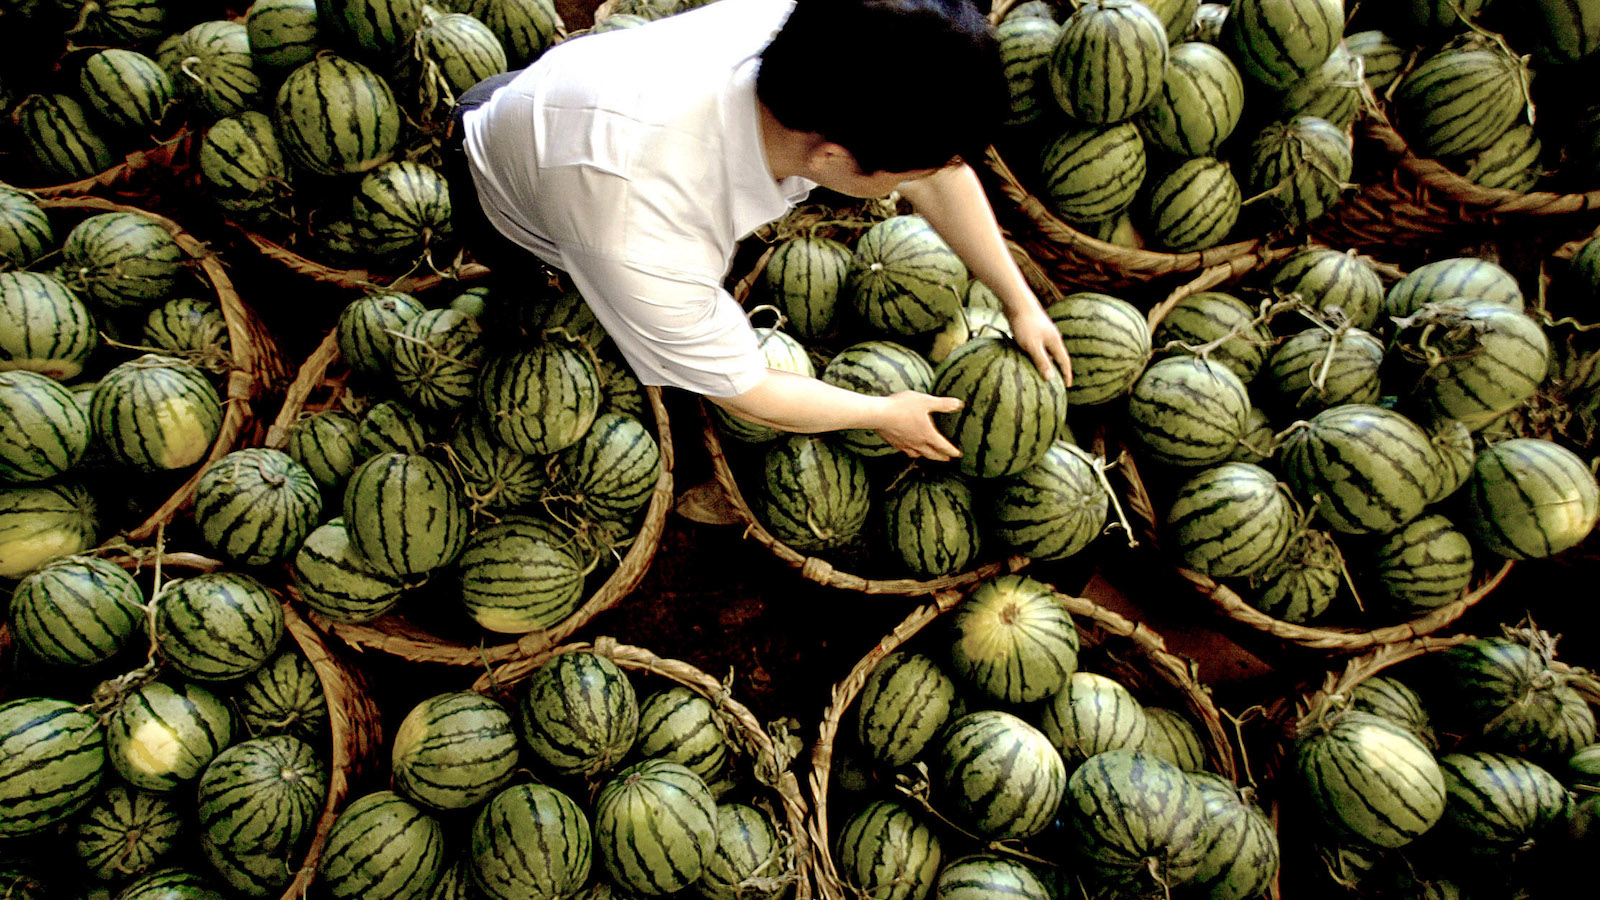 A Chinese fruit wholesaler arranges watermelons in his stall at a market in Shanghai municipality May 13, 2005. The Chinese mainland has decided to increase the admittance of Taiwan fruits from 12 species to 18 species and offer zero tariff on more than 10 species of the fruits, according to Chen Yunlin, director of the Taiwan Work Office of CPC Central Committee and the Taiwan Affairs Office of the State Council. Picture taken on May 13, 2005. NO RIGHTS CLEARANCES OR PERMISSIONS ARE REQUIRED FOR THIS IMAGE. CHINA OUT REUTERS/China Newsphoto PP05050211  SUN/CN - RTRB47P